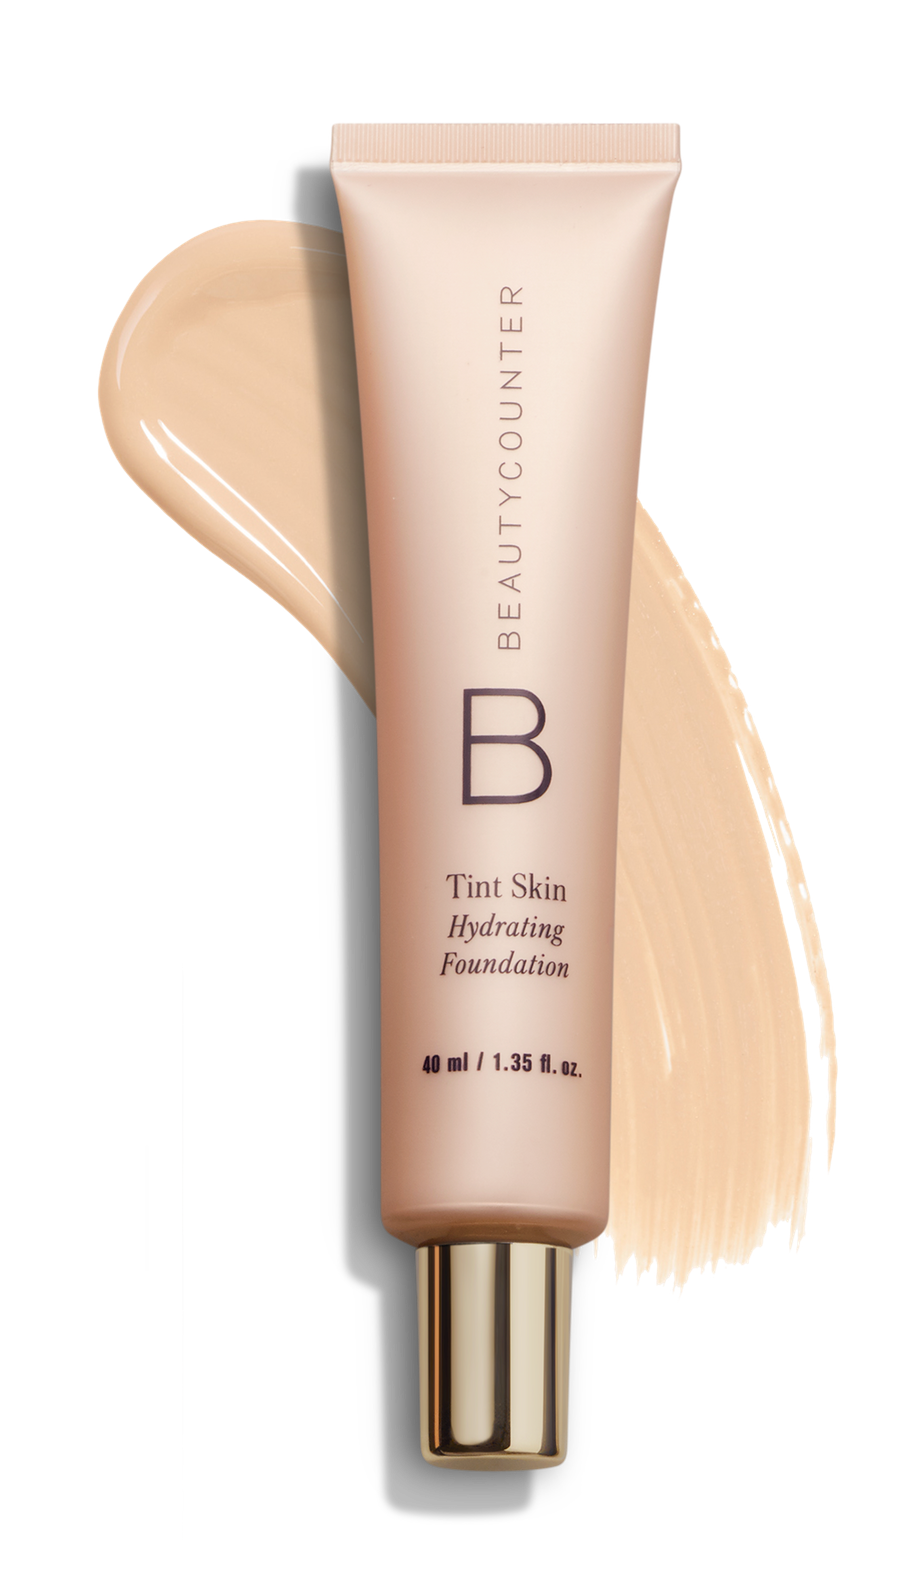 Tint Skin Hydrating Liquid Foundation in Porcelain